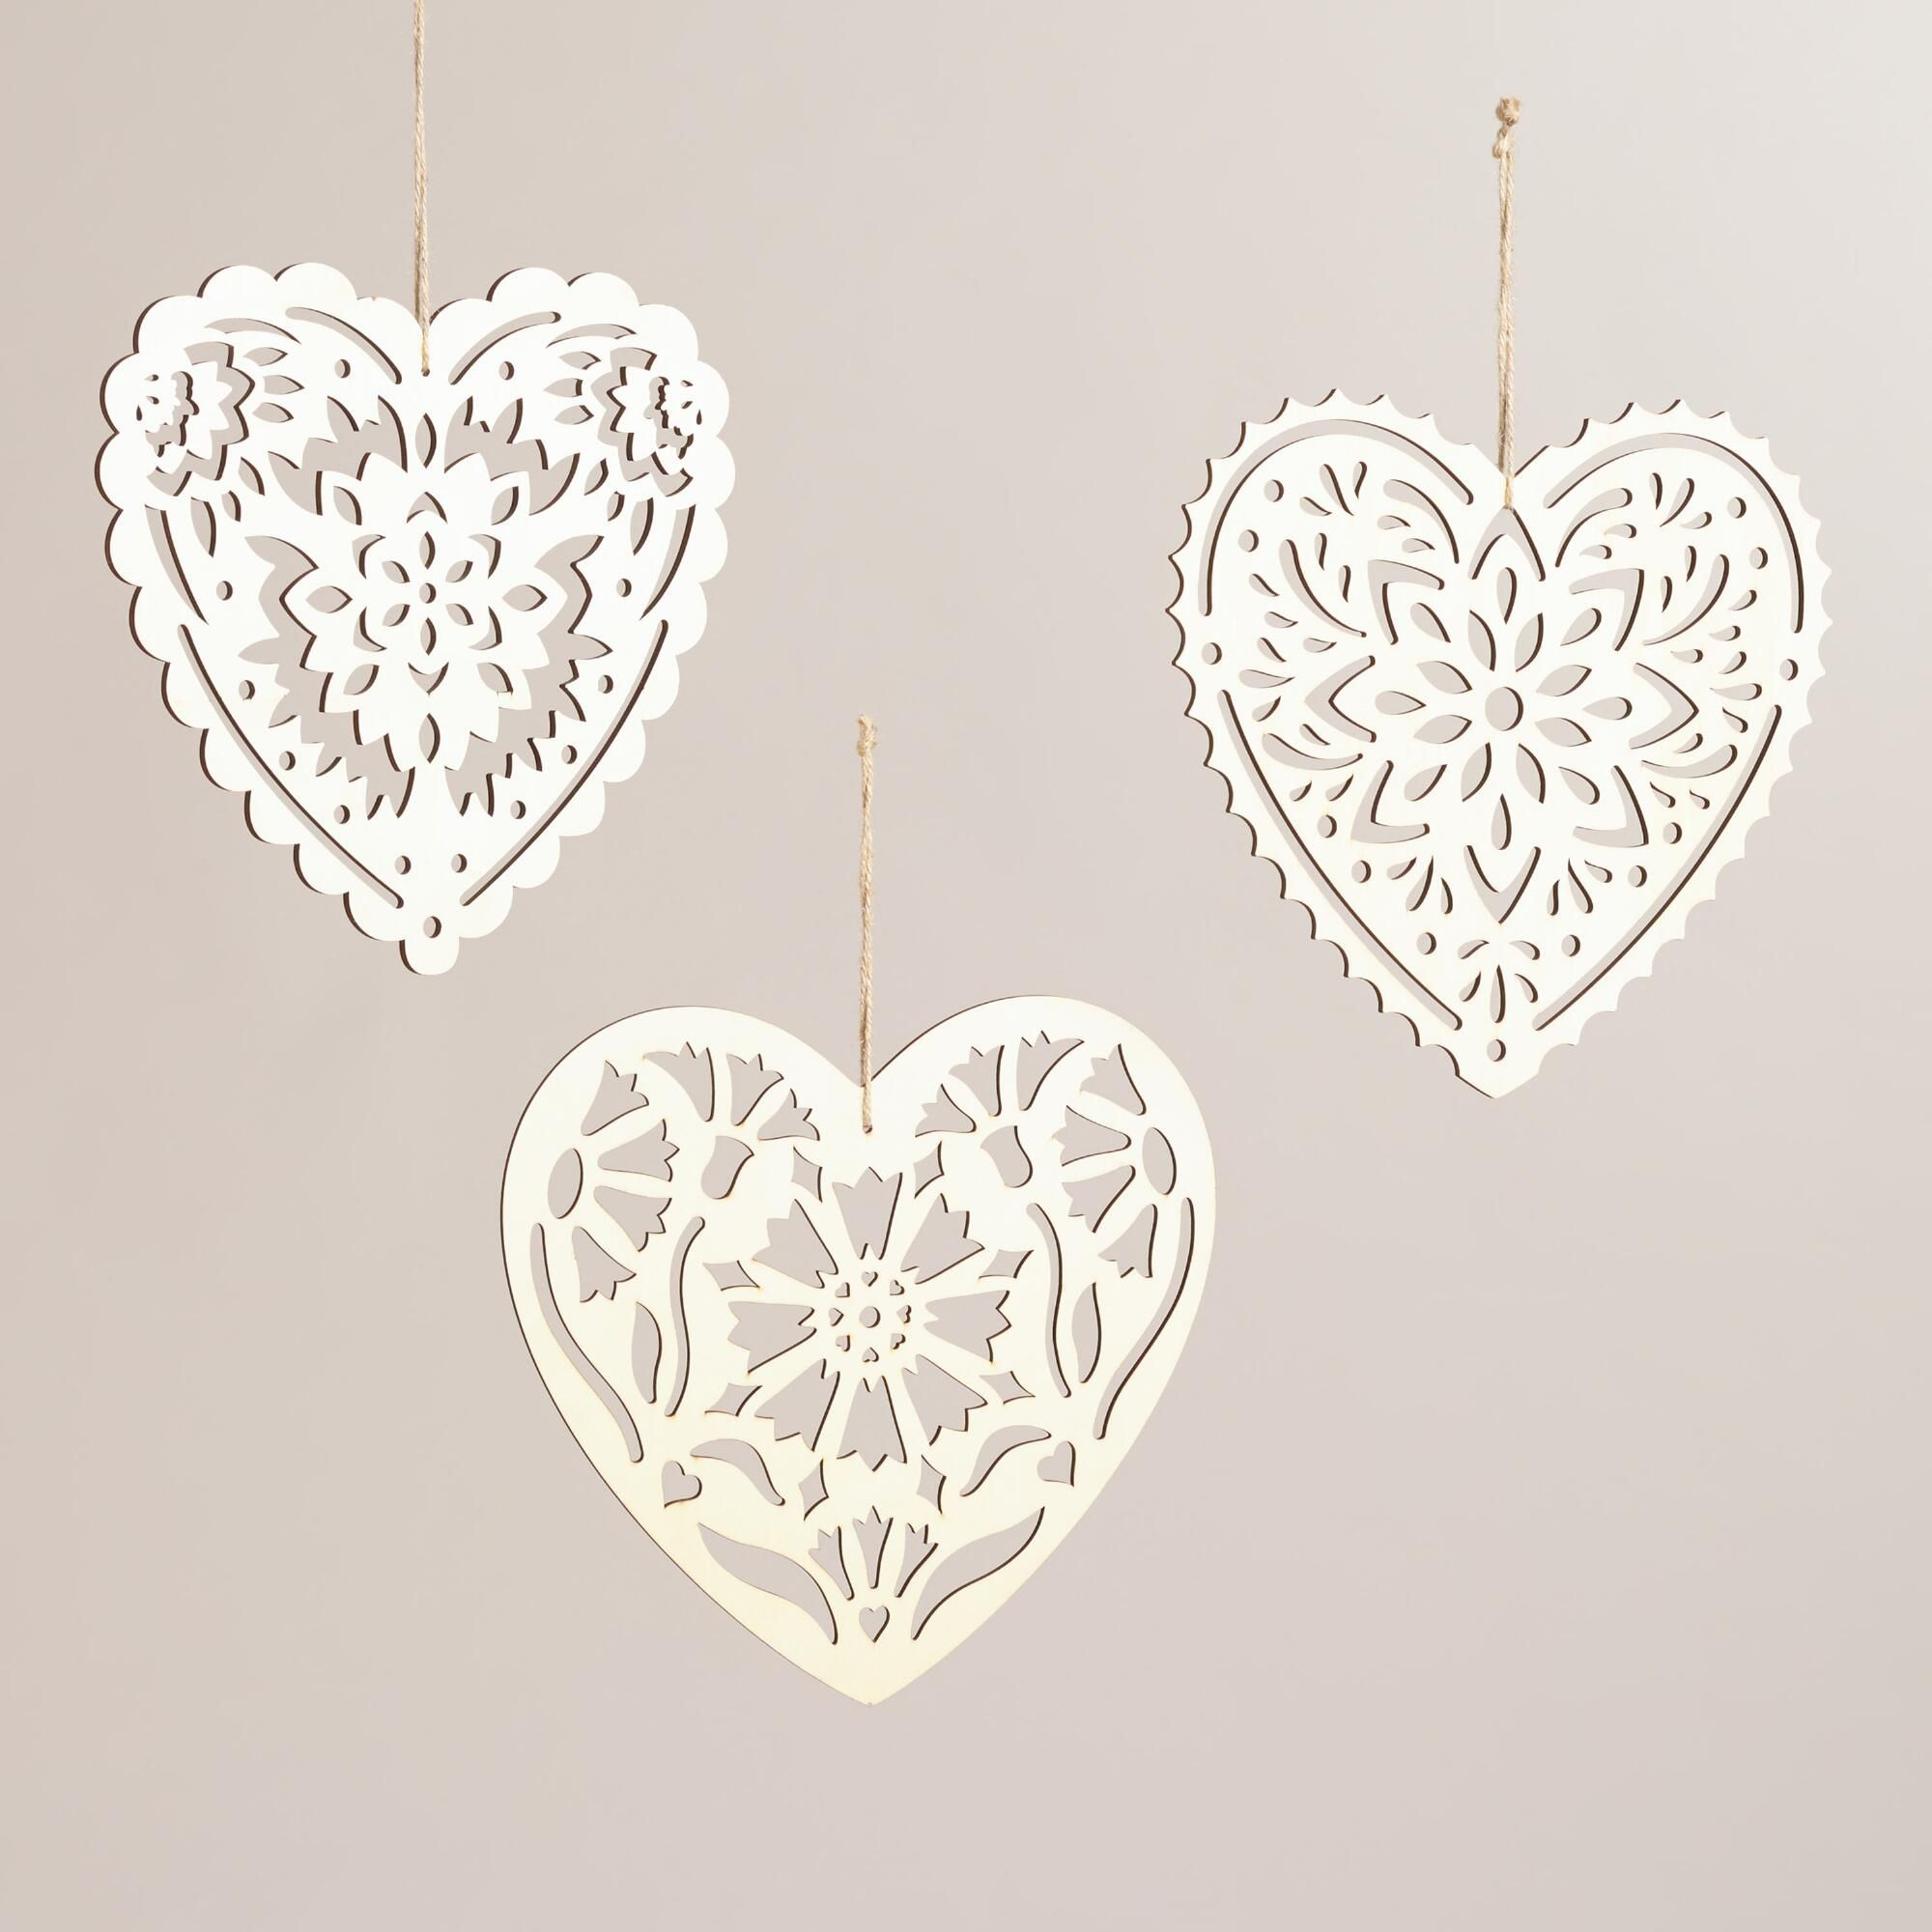 One Of My Favorite Discoveries At Worldmarketcom Laser Cut Wood Heart